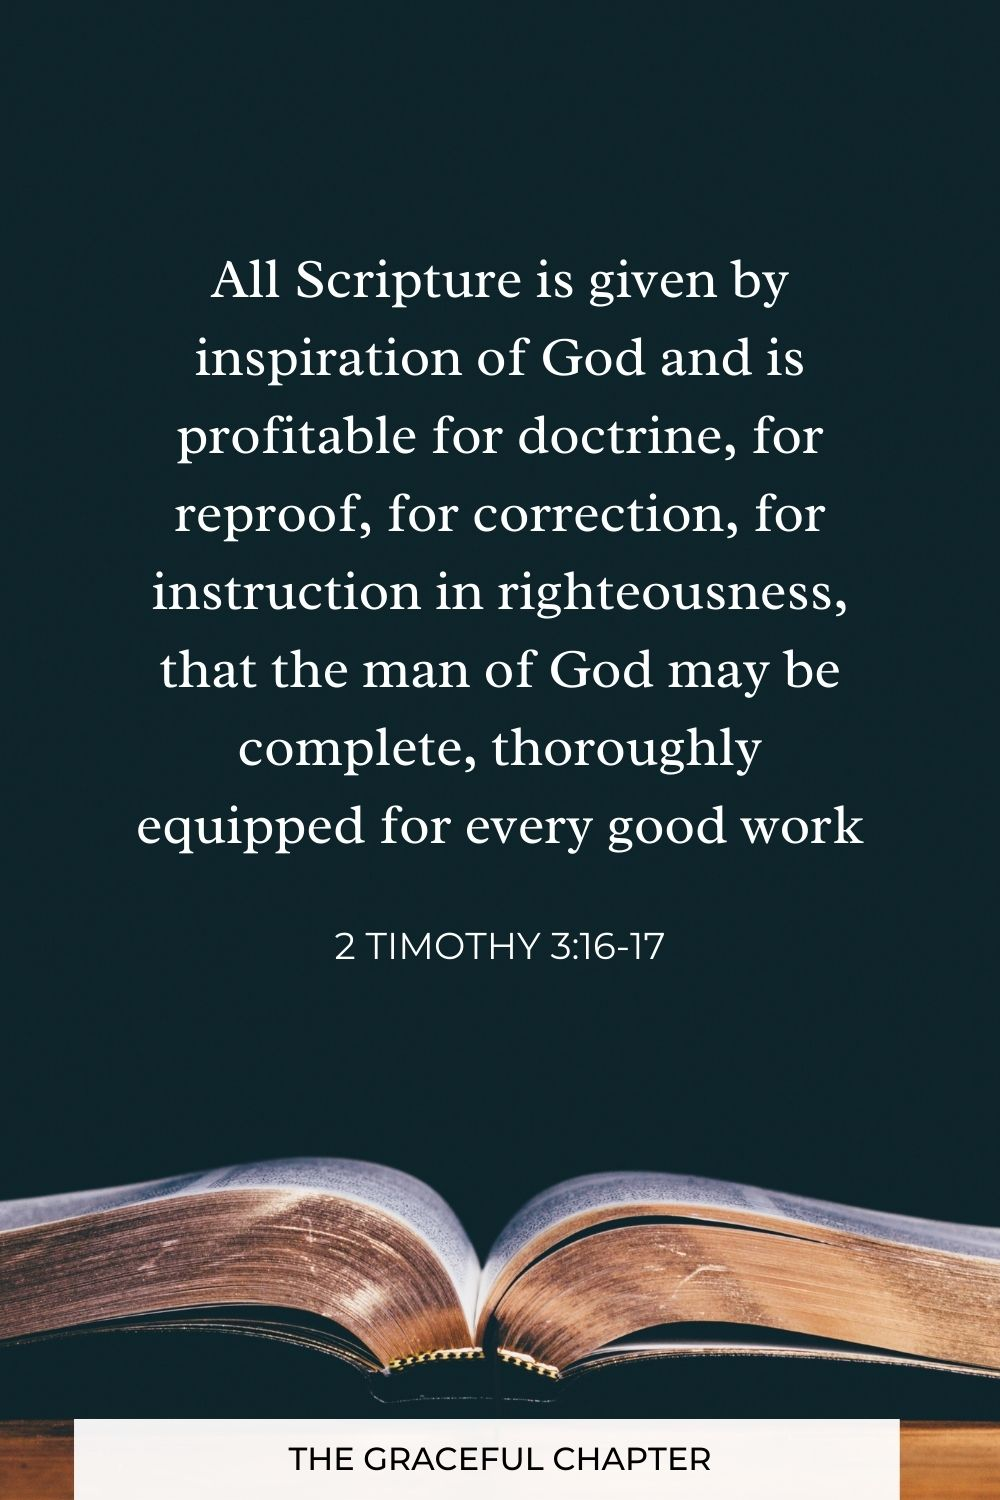 All Scripture is given by inspiration of God and is profitable for doctrine, for reproof, for correction, for instruction in righteousness, that the man of God may be complete, thoroughly equipped for every good work 2 Timothy 3:16-17